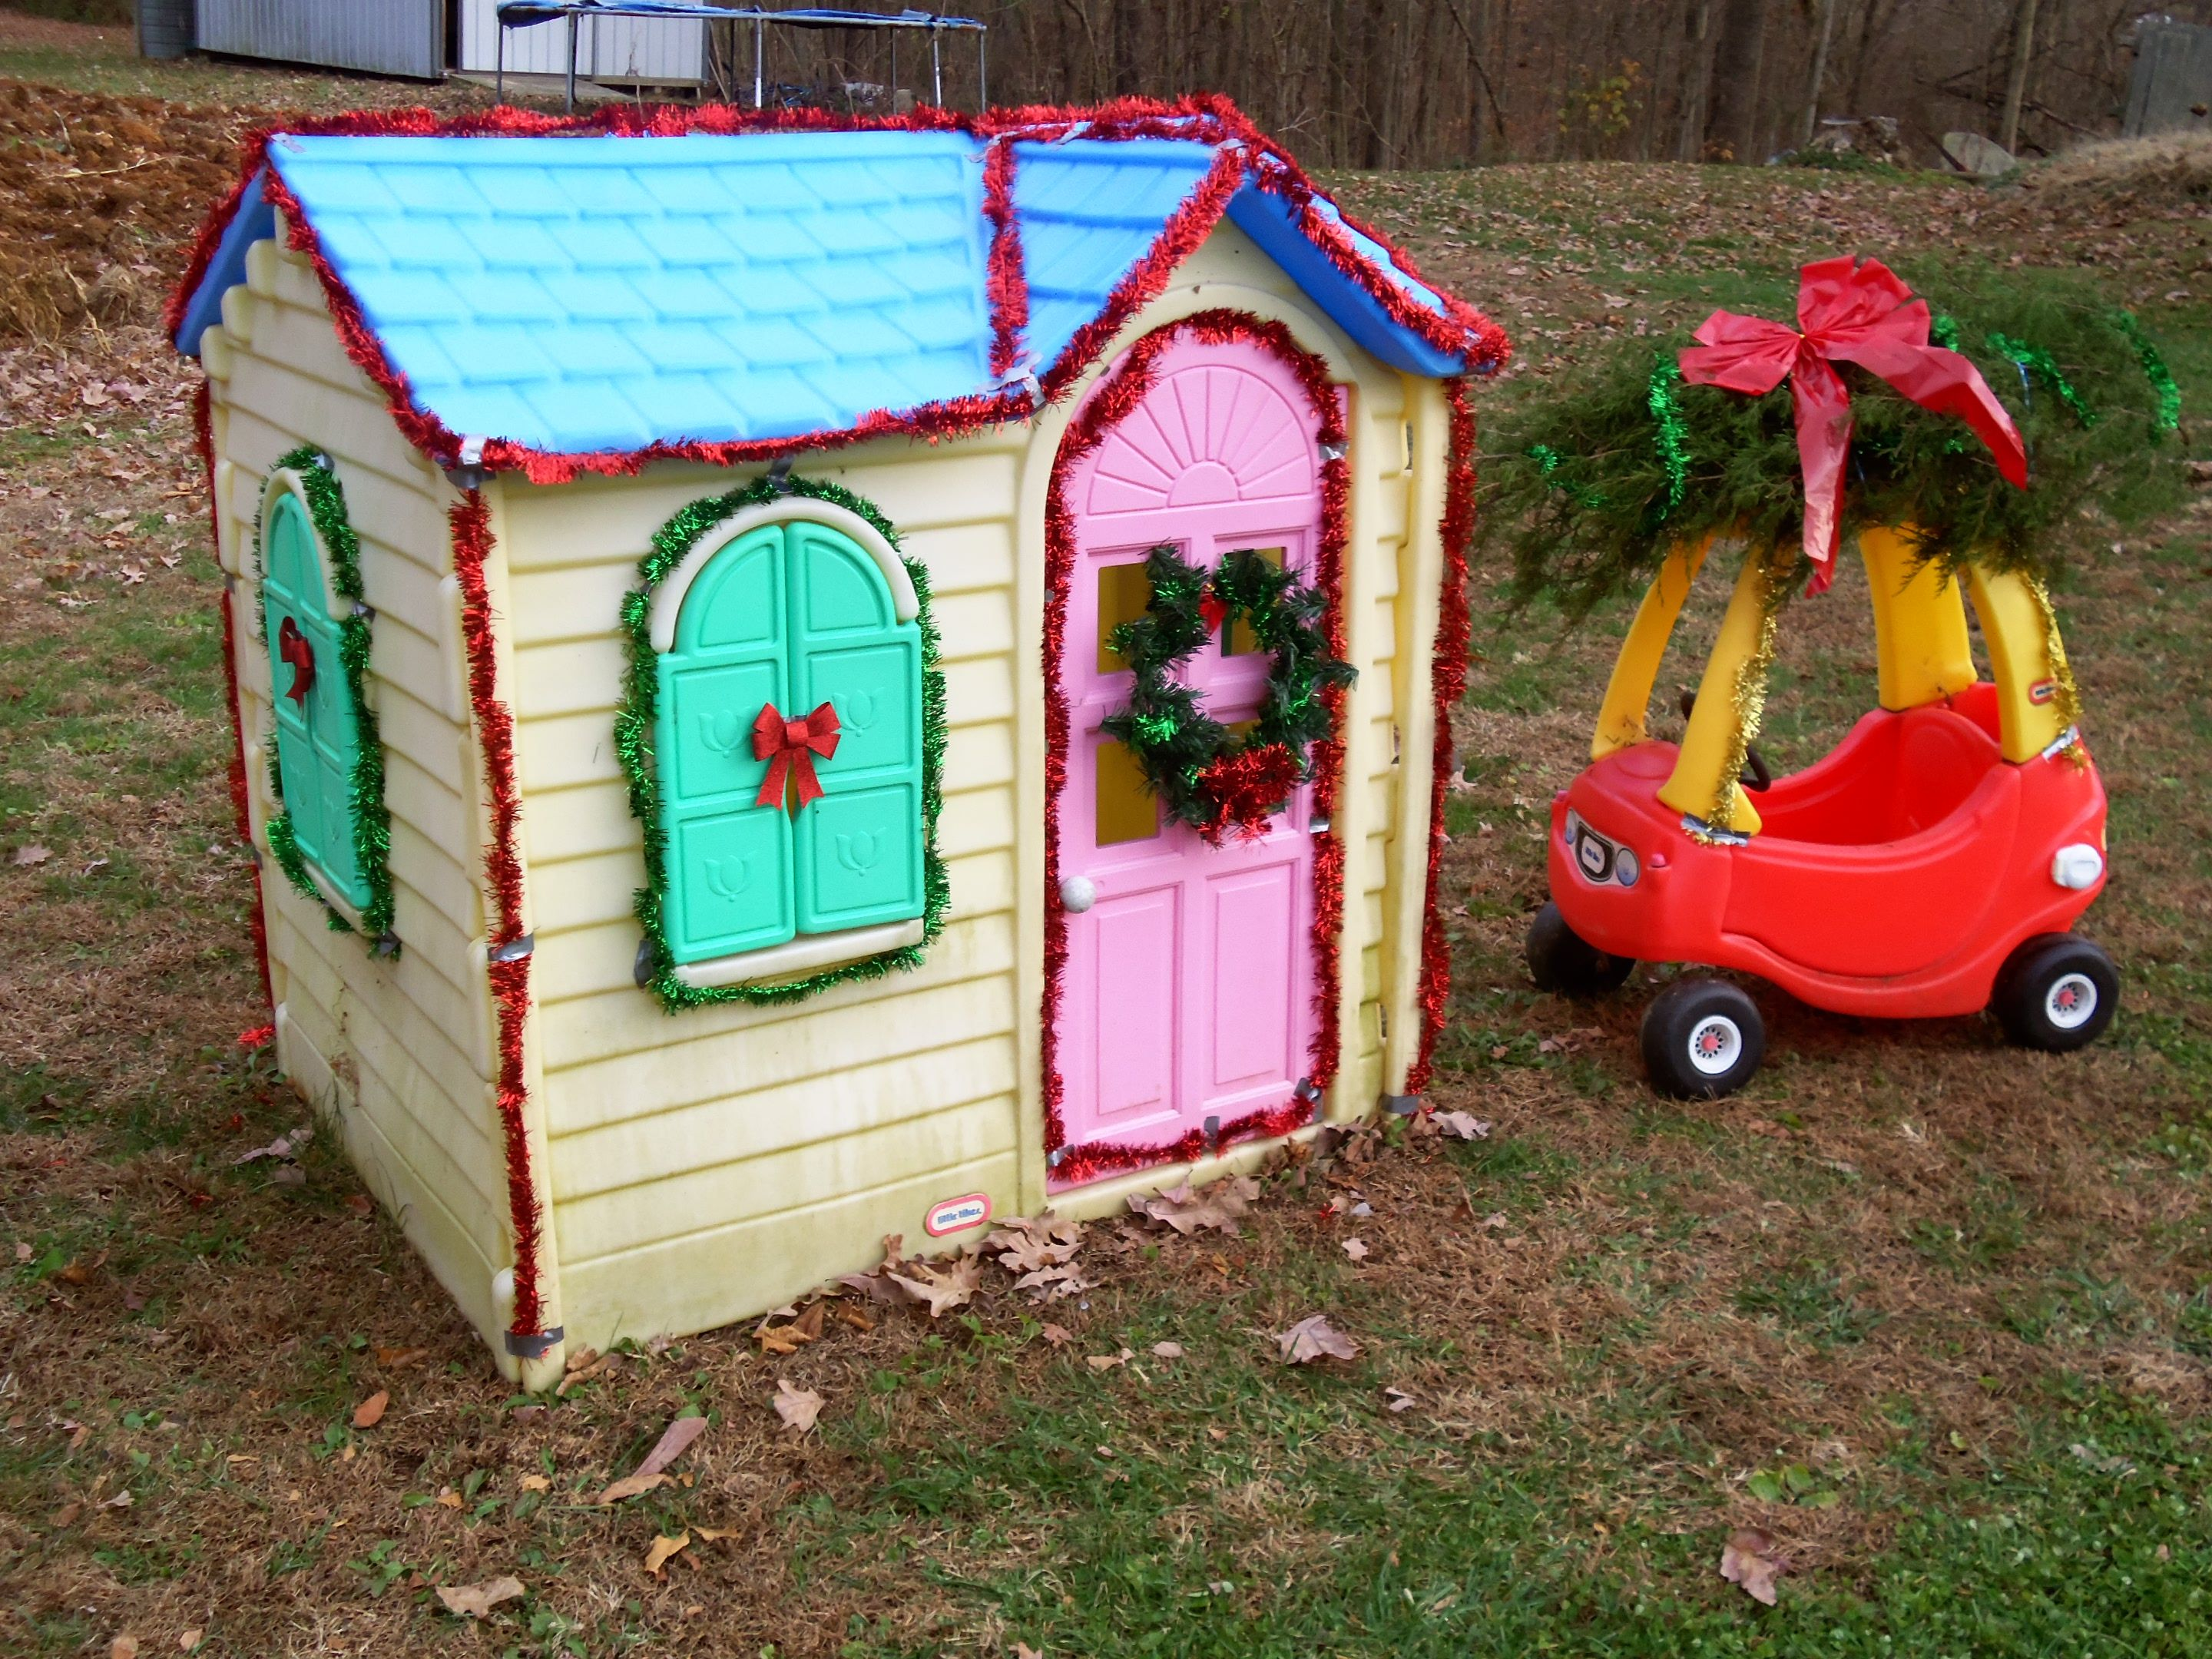 Cosy Little Tikes Home Garden Playhouse. Decorated Little Tikes Playhouse and Cozy Coupe car with Christmas Tree on  top